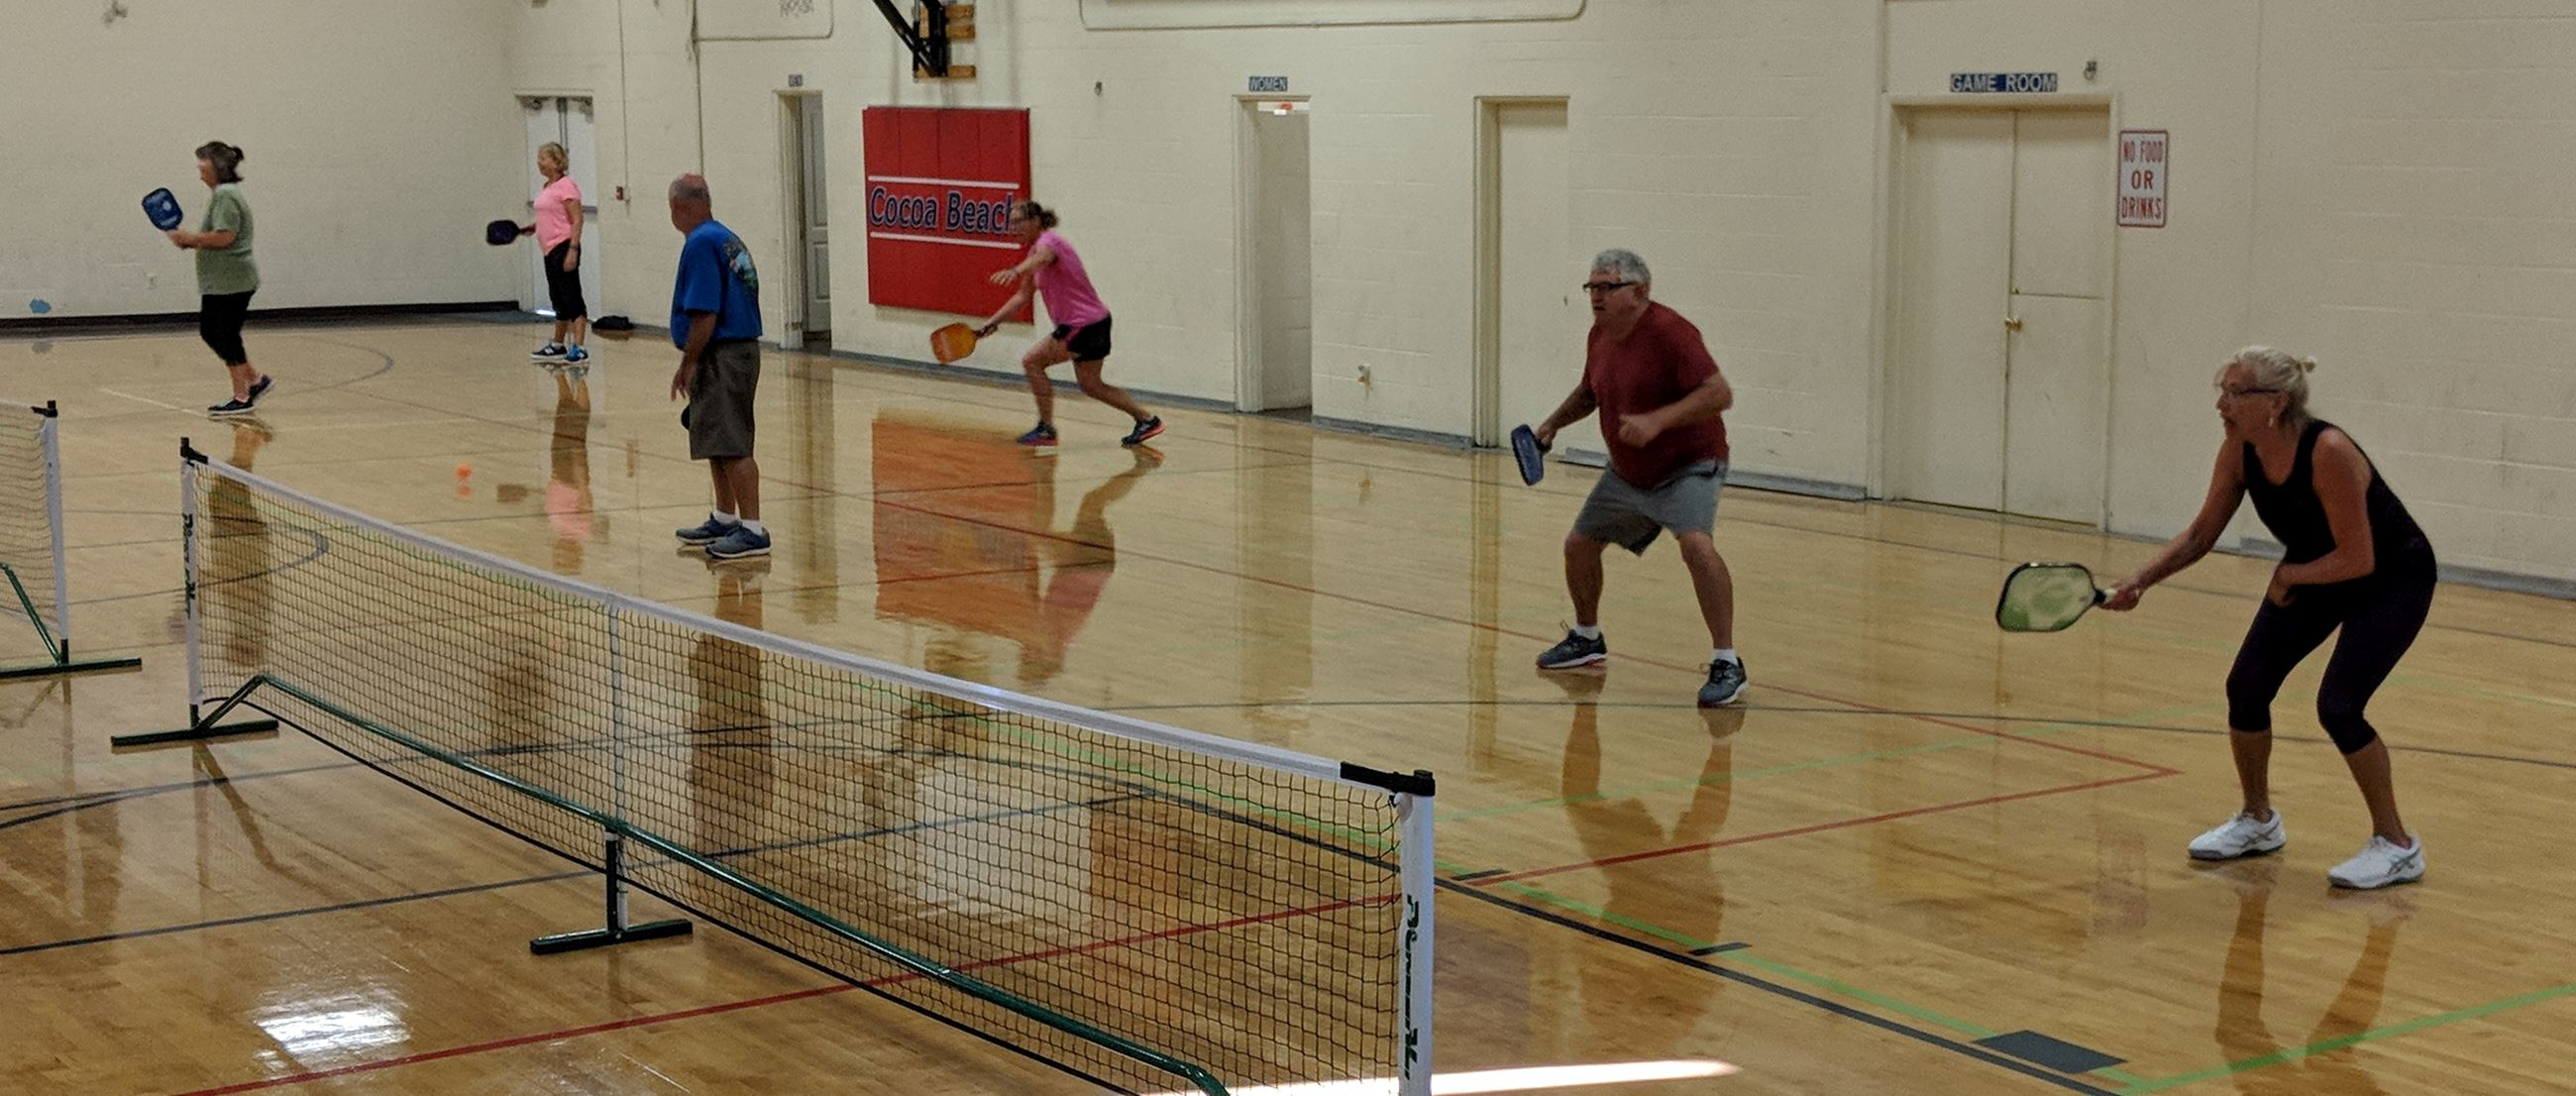 pickleball cb